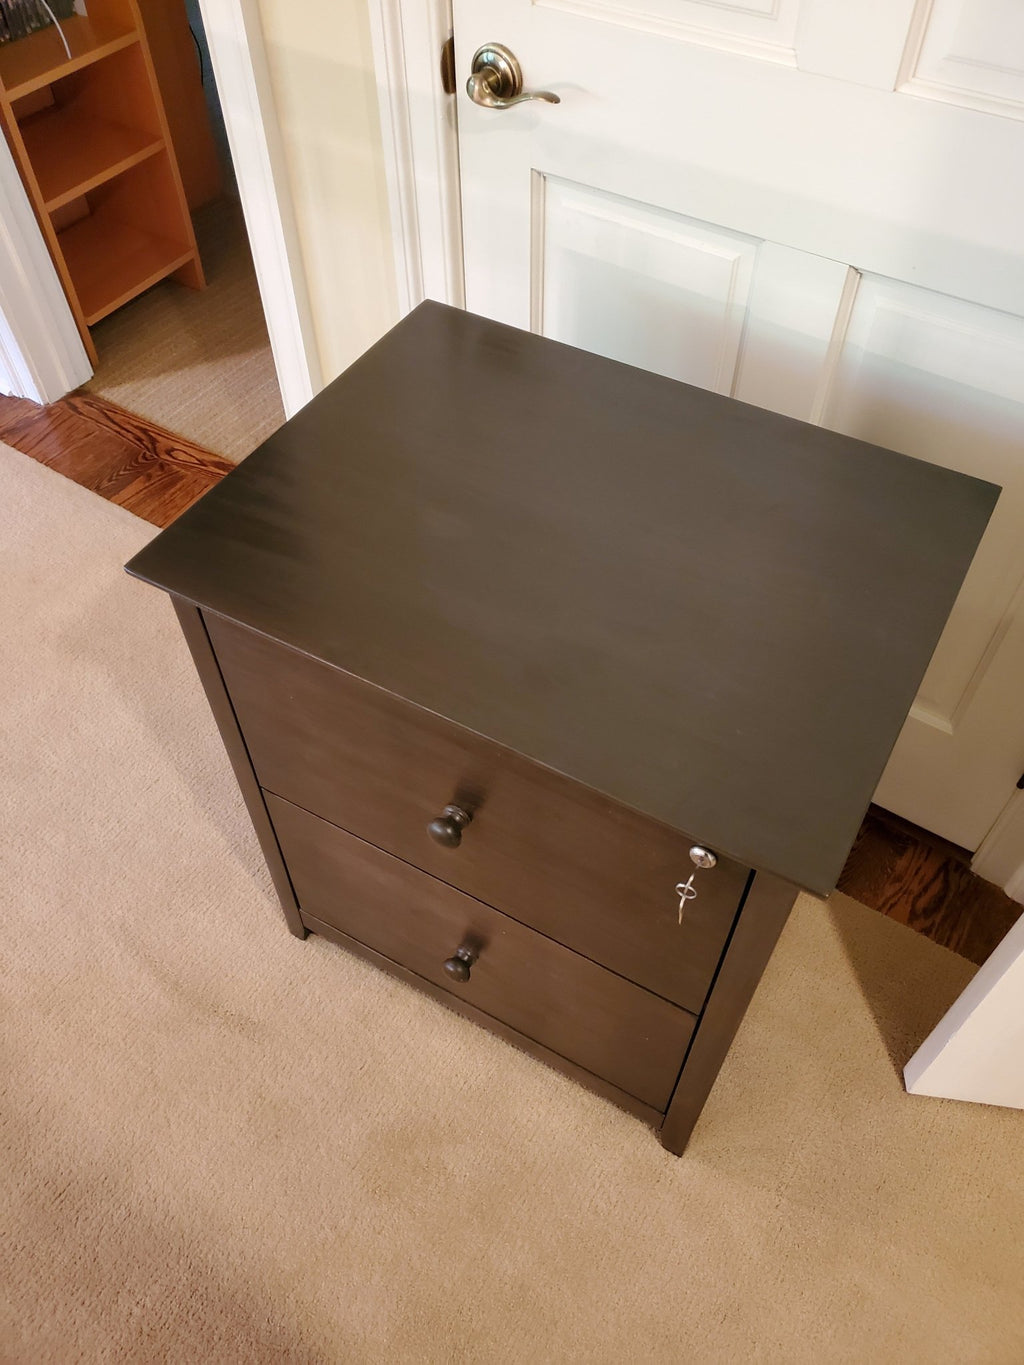 2 Drawer Filing Cabinet with lock on top drawer in Tobacco finish.